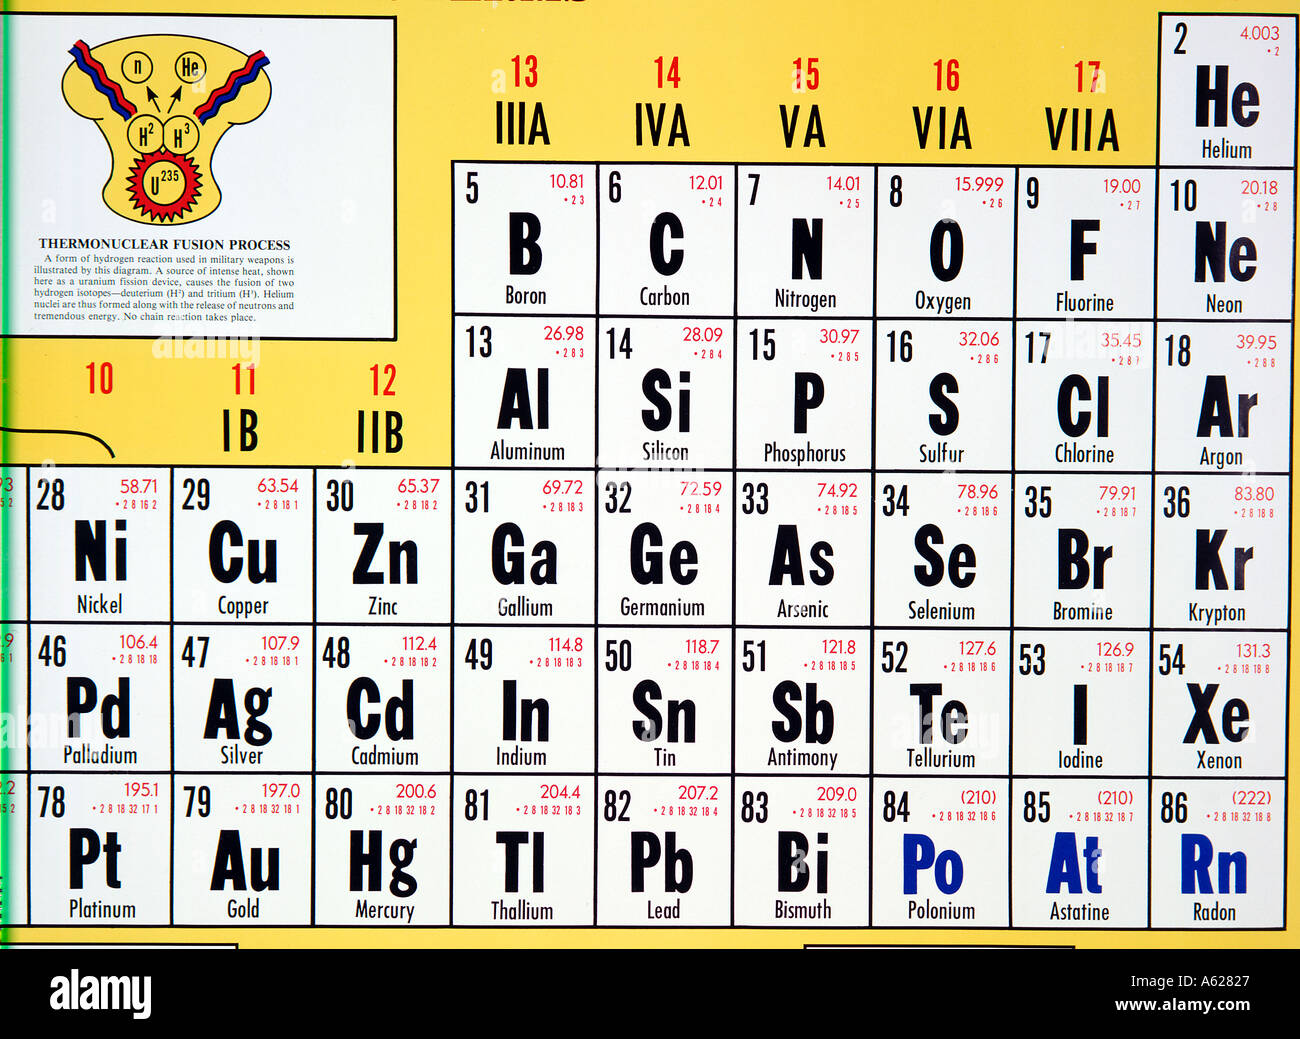 Element 112 periodic table gallery periodic table images periodic table 112 choice image periodic table images periodic table 112 choice image periodic table images gamestrikefo Image collections